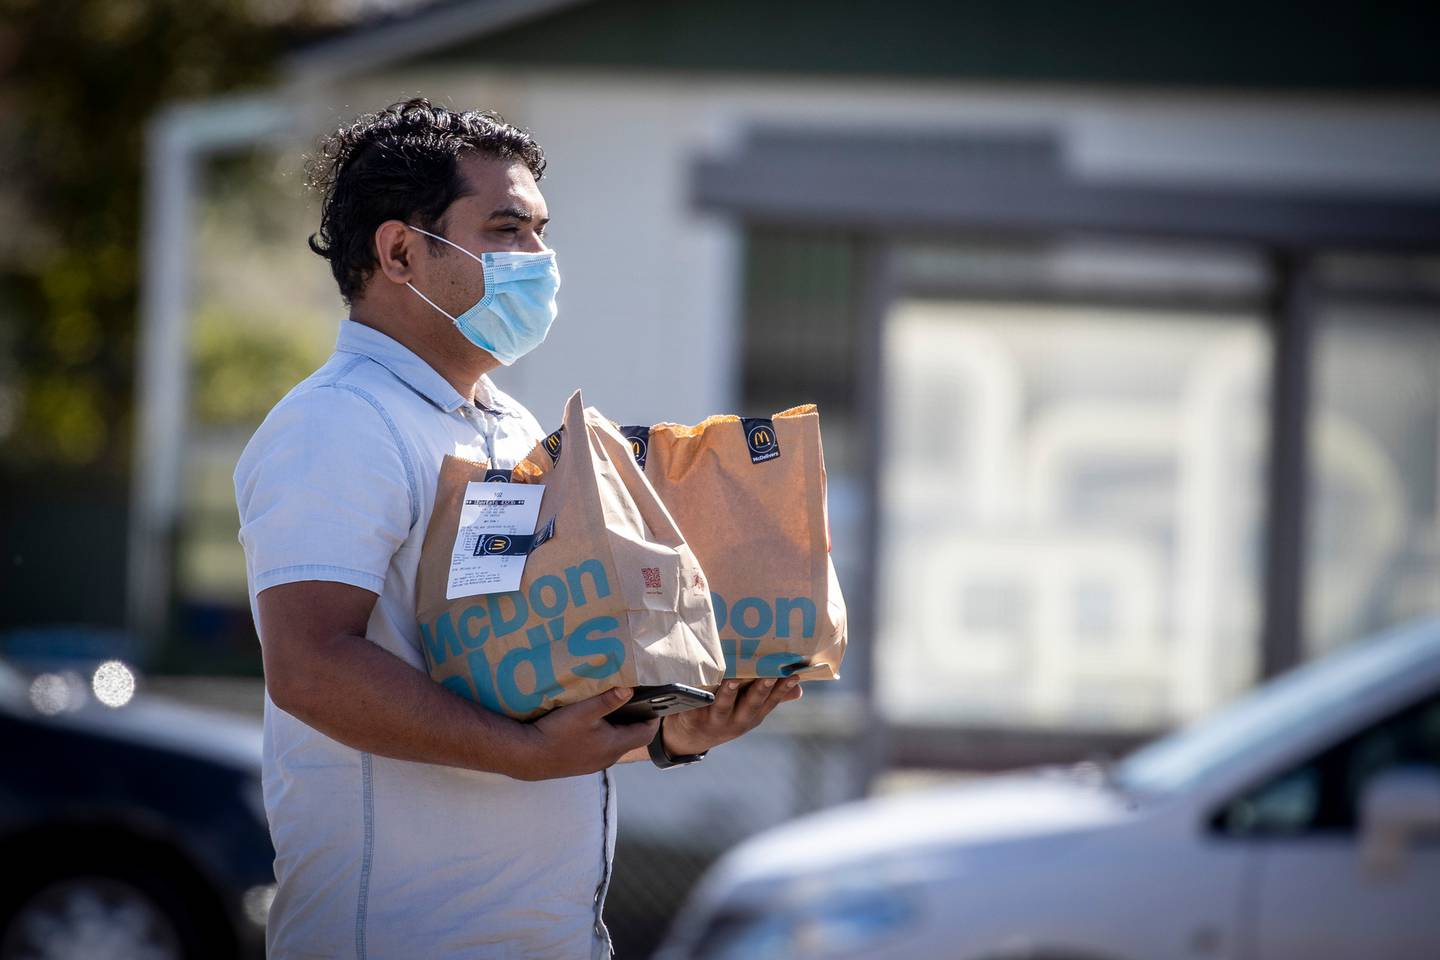 An UberEats delivery driver collects a meal from McDonald's in April. Photo: Michael Craig / NZH